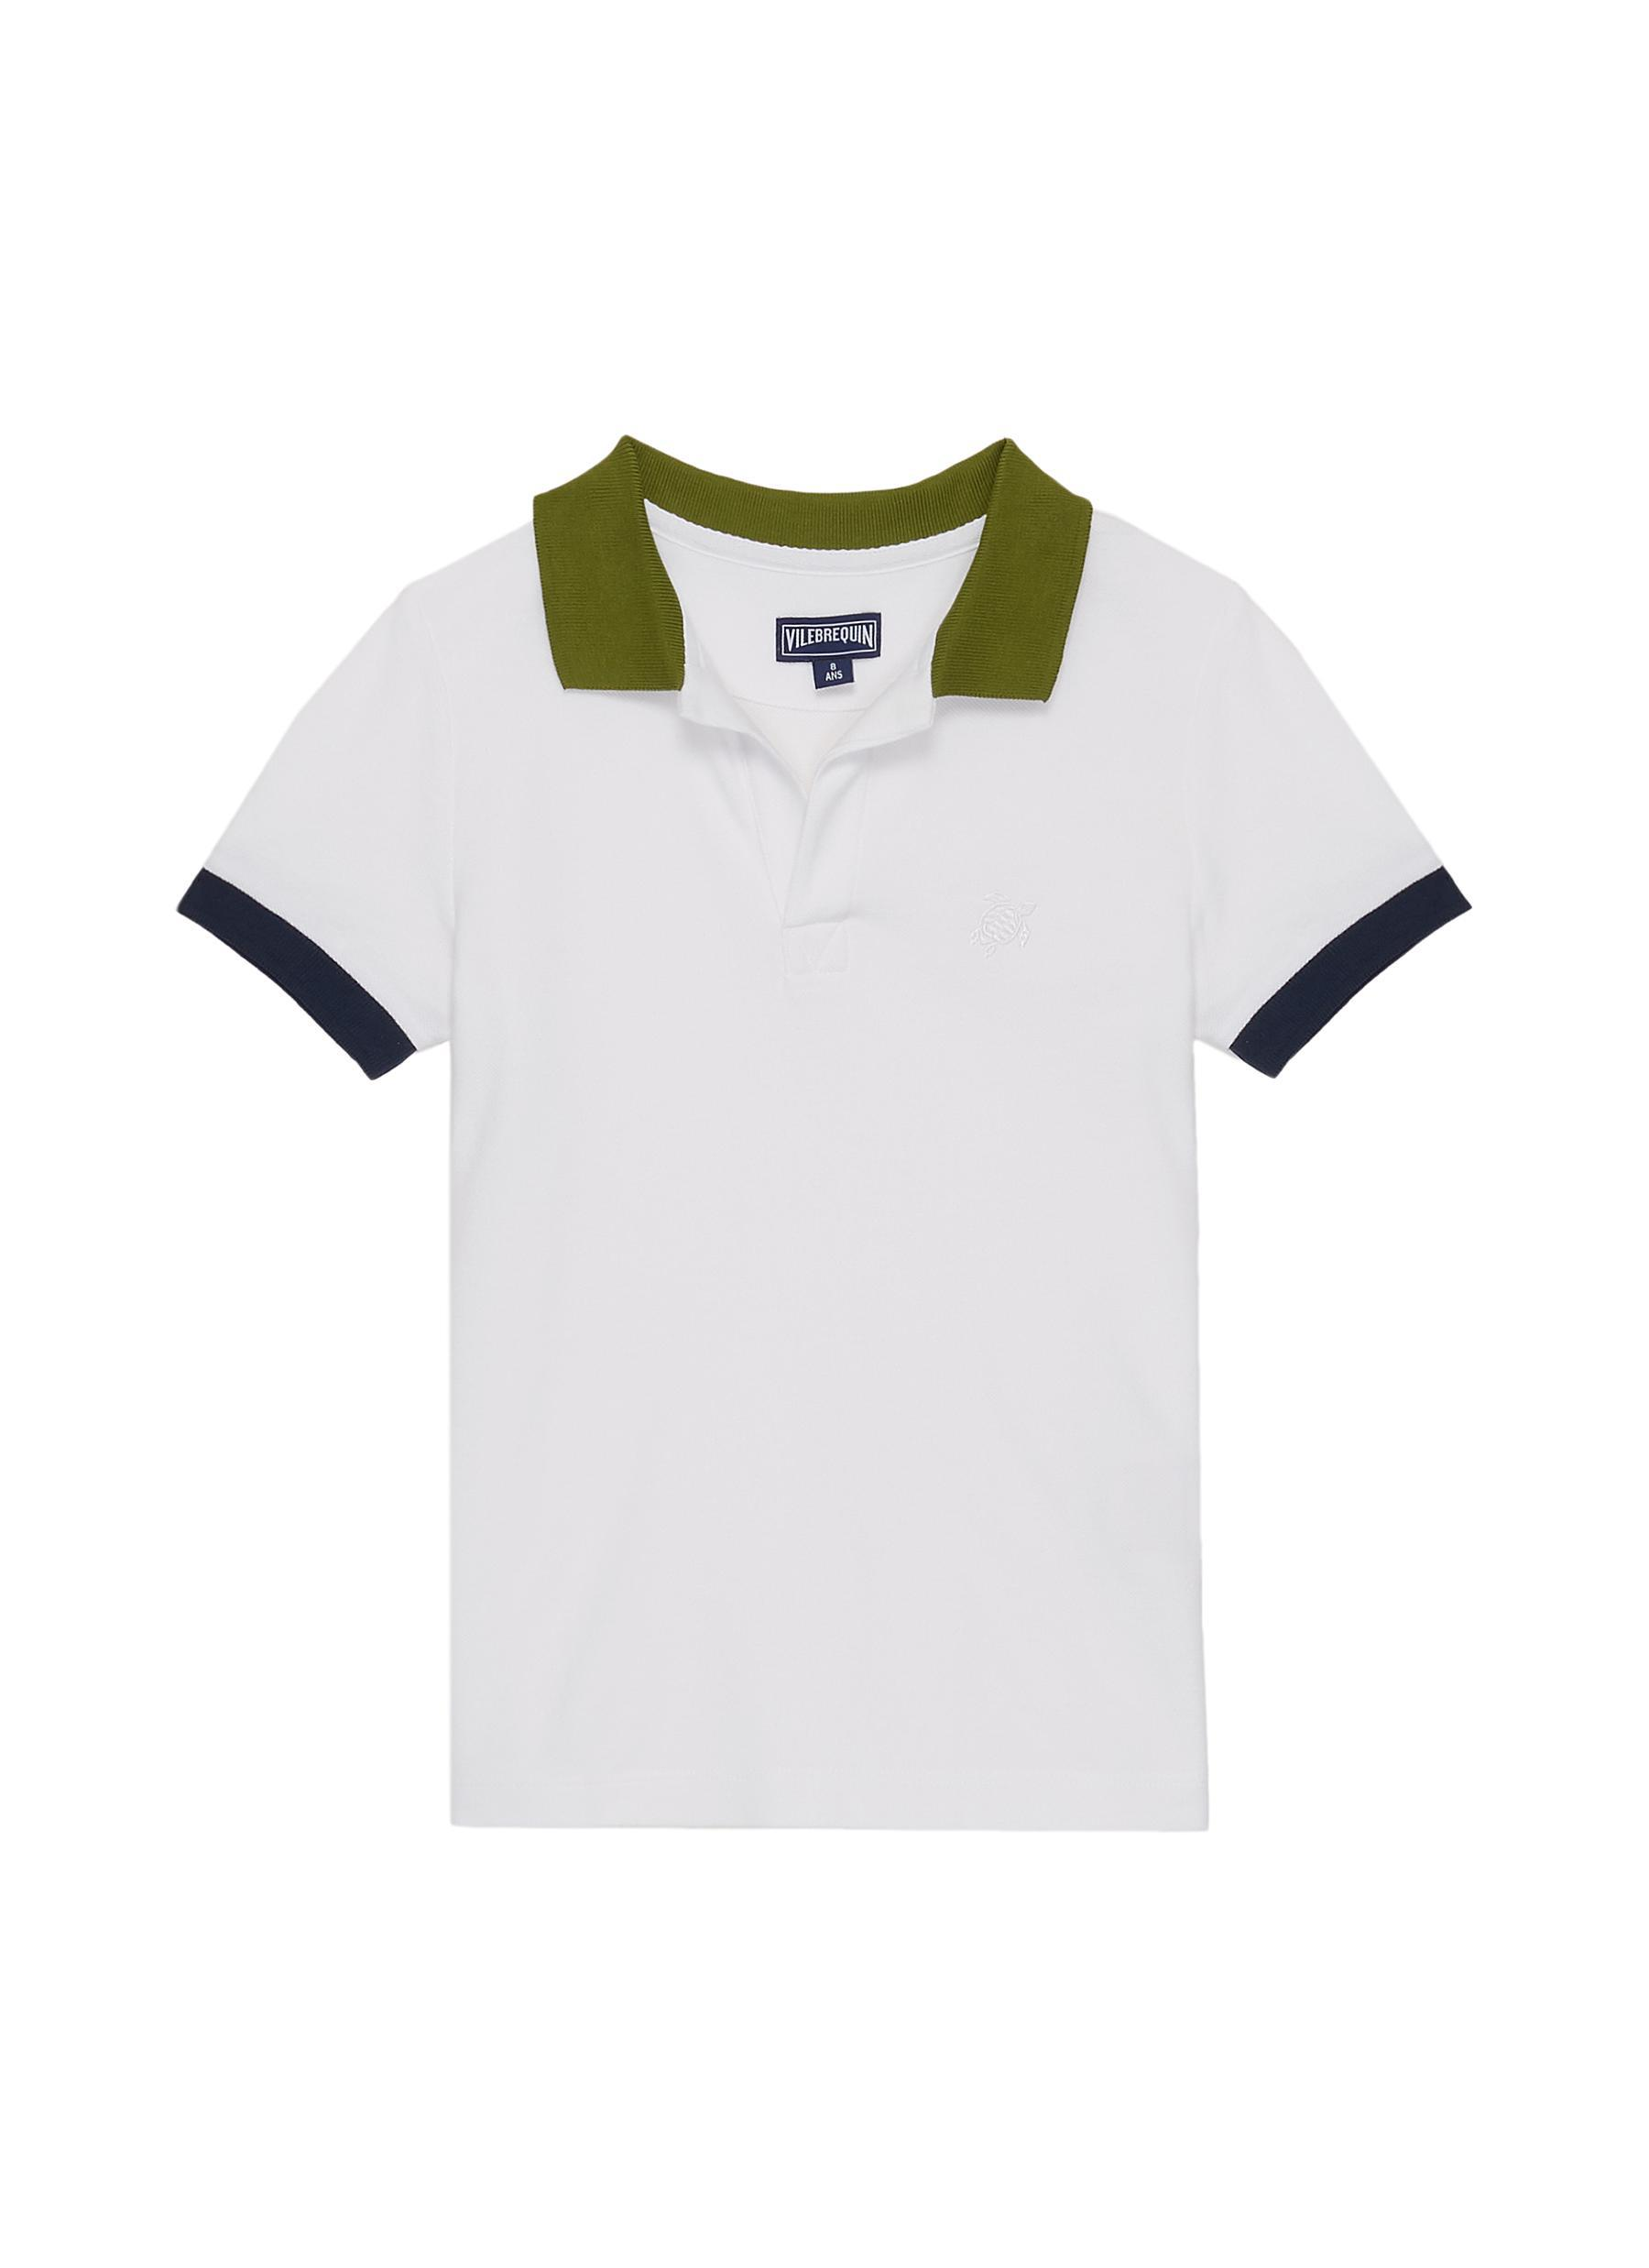 Vilebrequin Boys Cotton Pique Polo Shirts Multicolor Boys Clothing Tops T Shirts Shirts